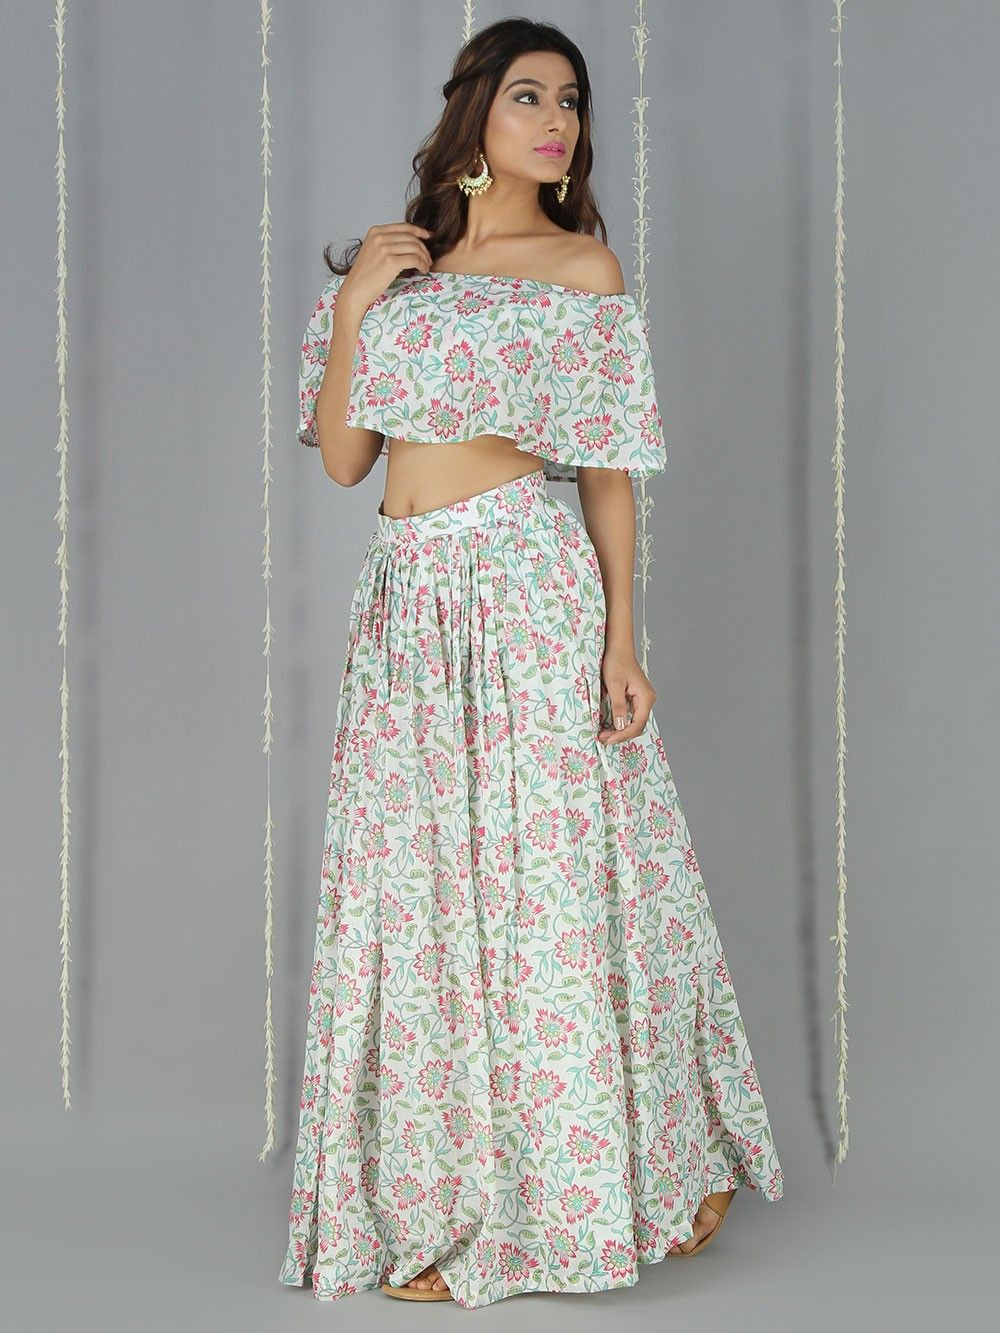 5ac1799869 Red Green Off White Mulmul Off Shoulder Crop Top with Skirt - Set of 2